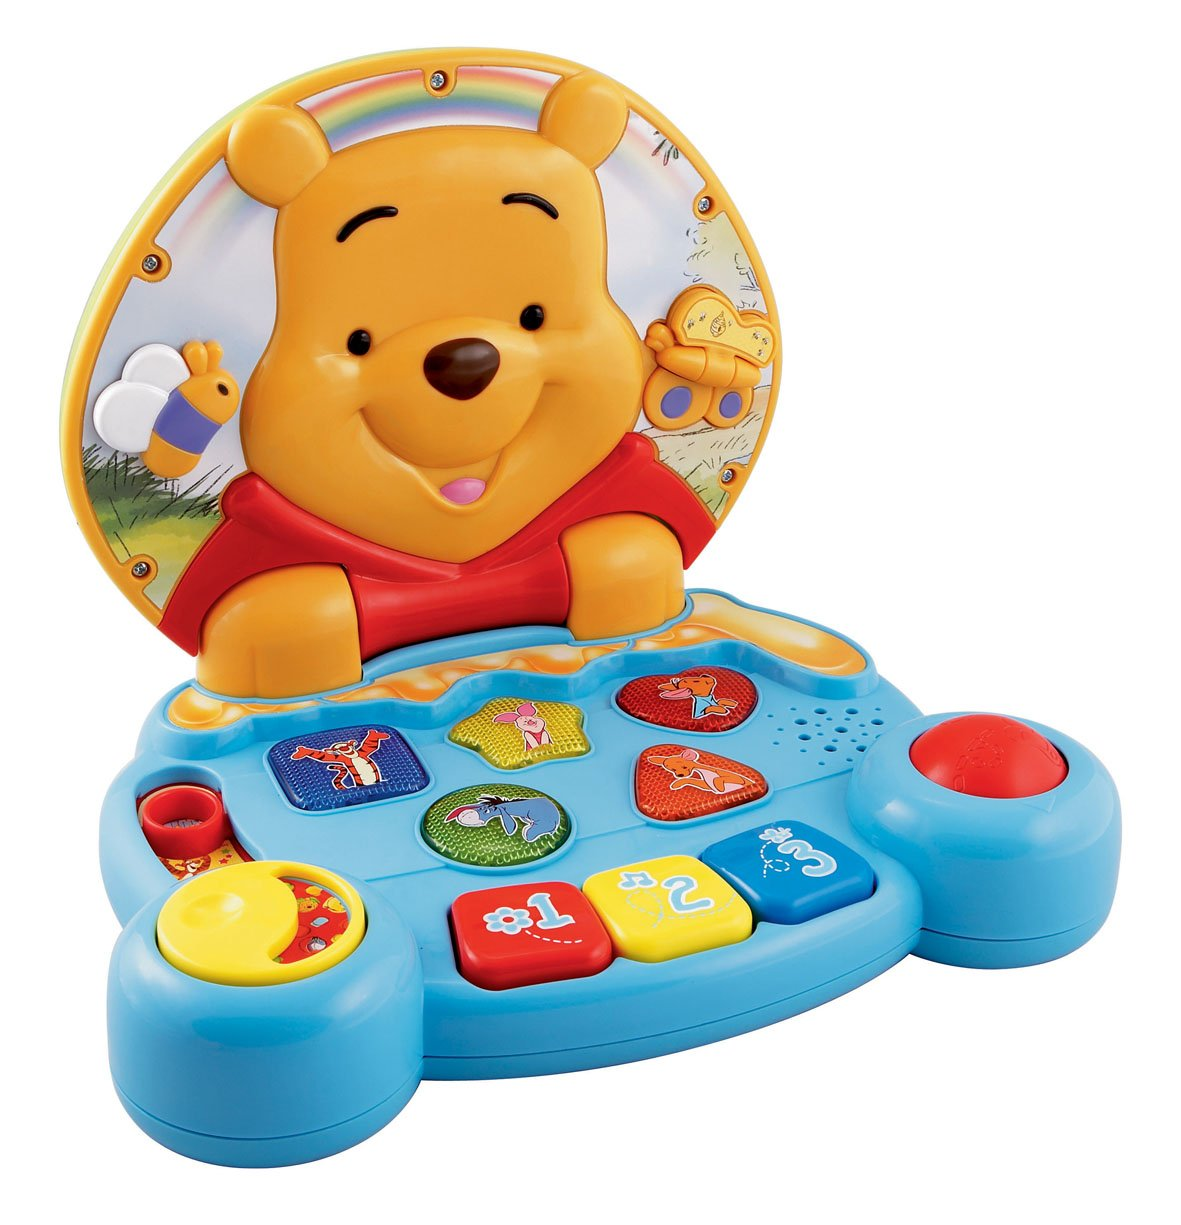 VTech Play and Learn Laptop